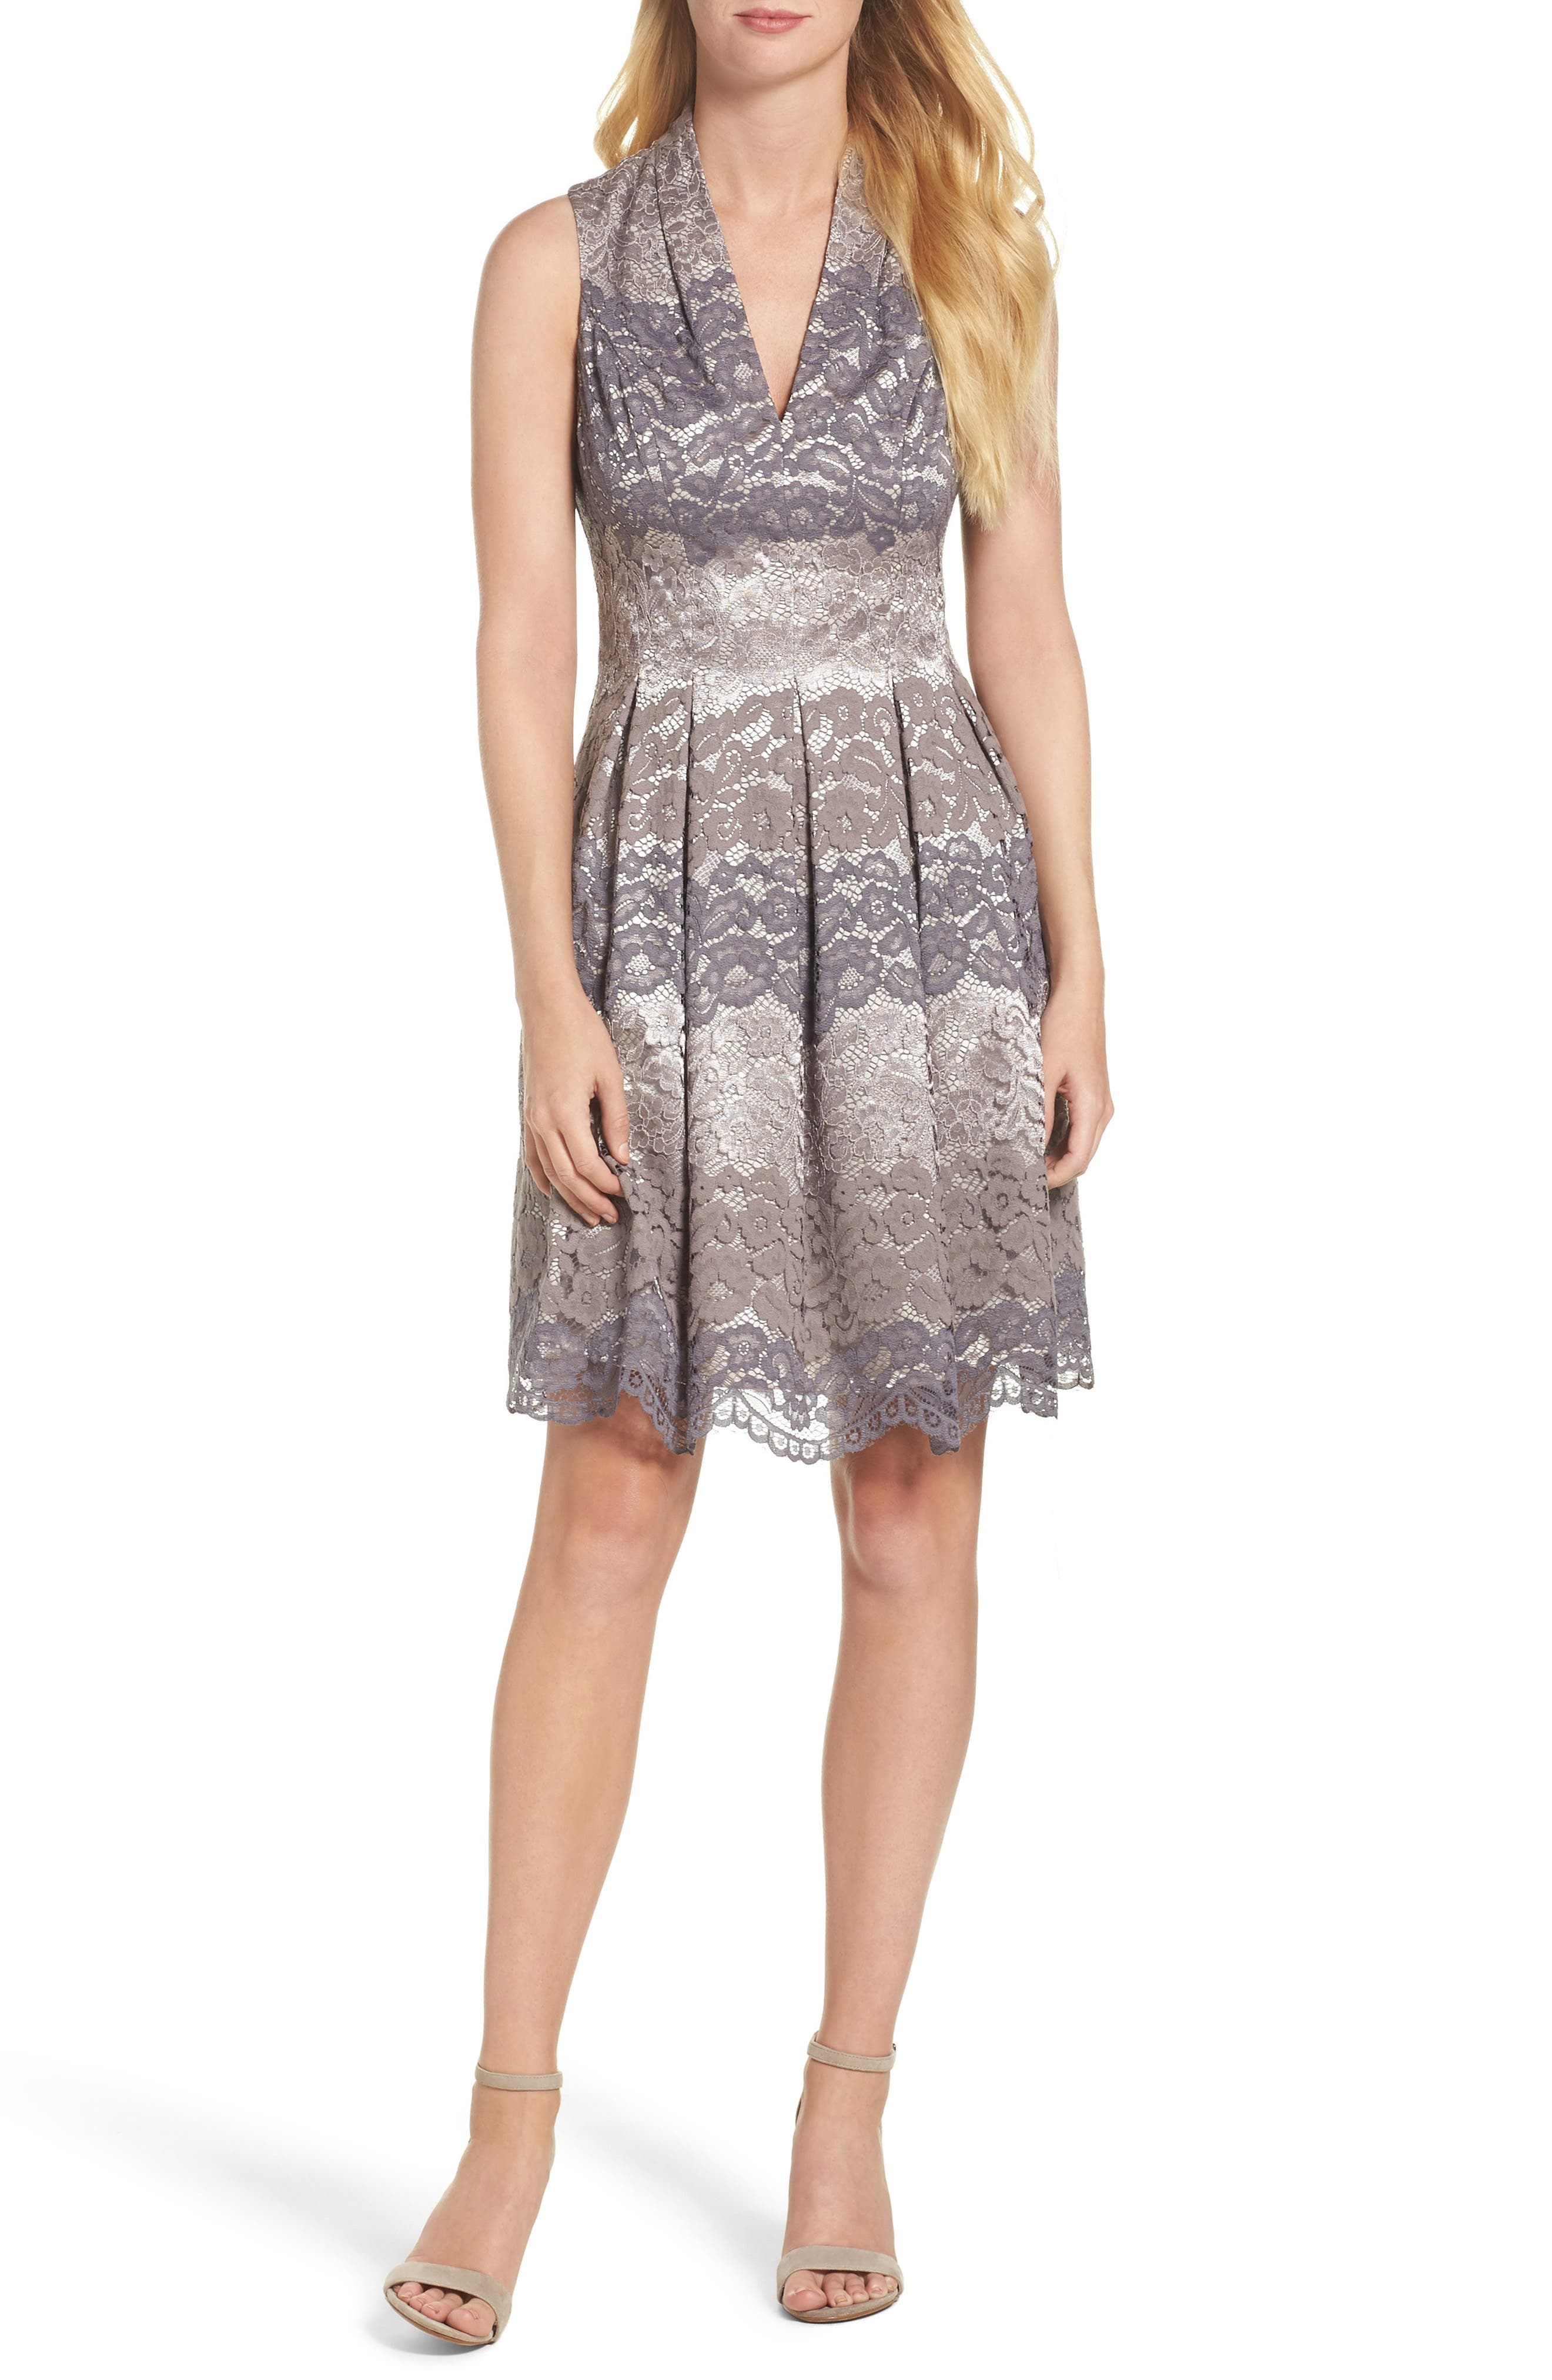 Alternate Image 1 Selected - Vince Camuto Lace Fit & Flare Dress (Regular & Petite)